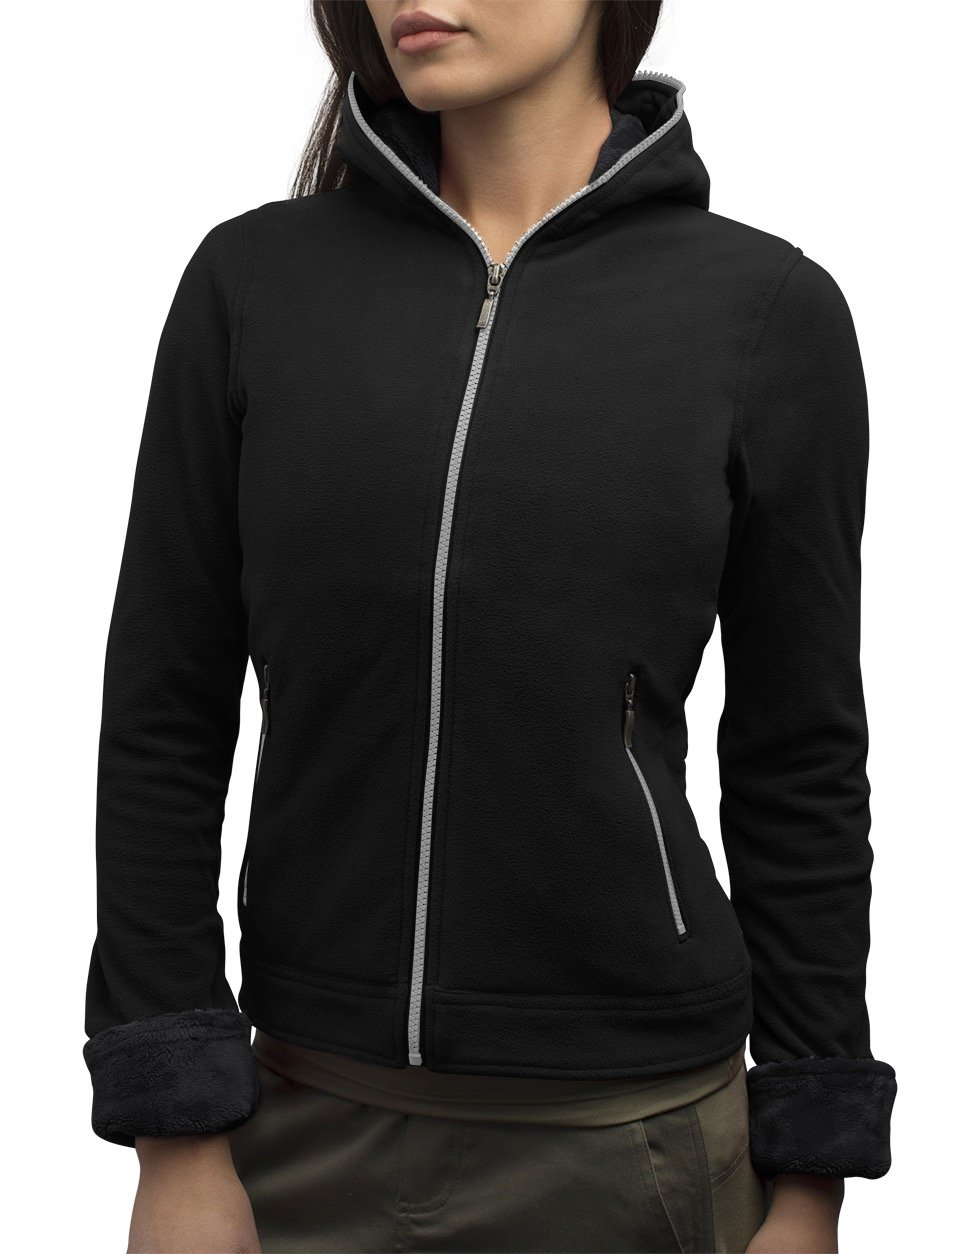 SCOTTeVEST Chloe Hoodie- 14 Pockets - Travel Clothing, Pickpocket Proof MGC L